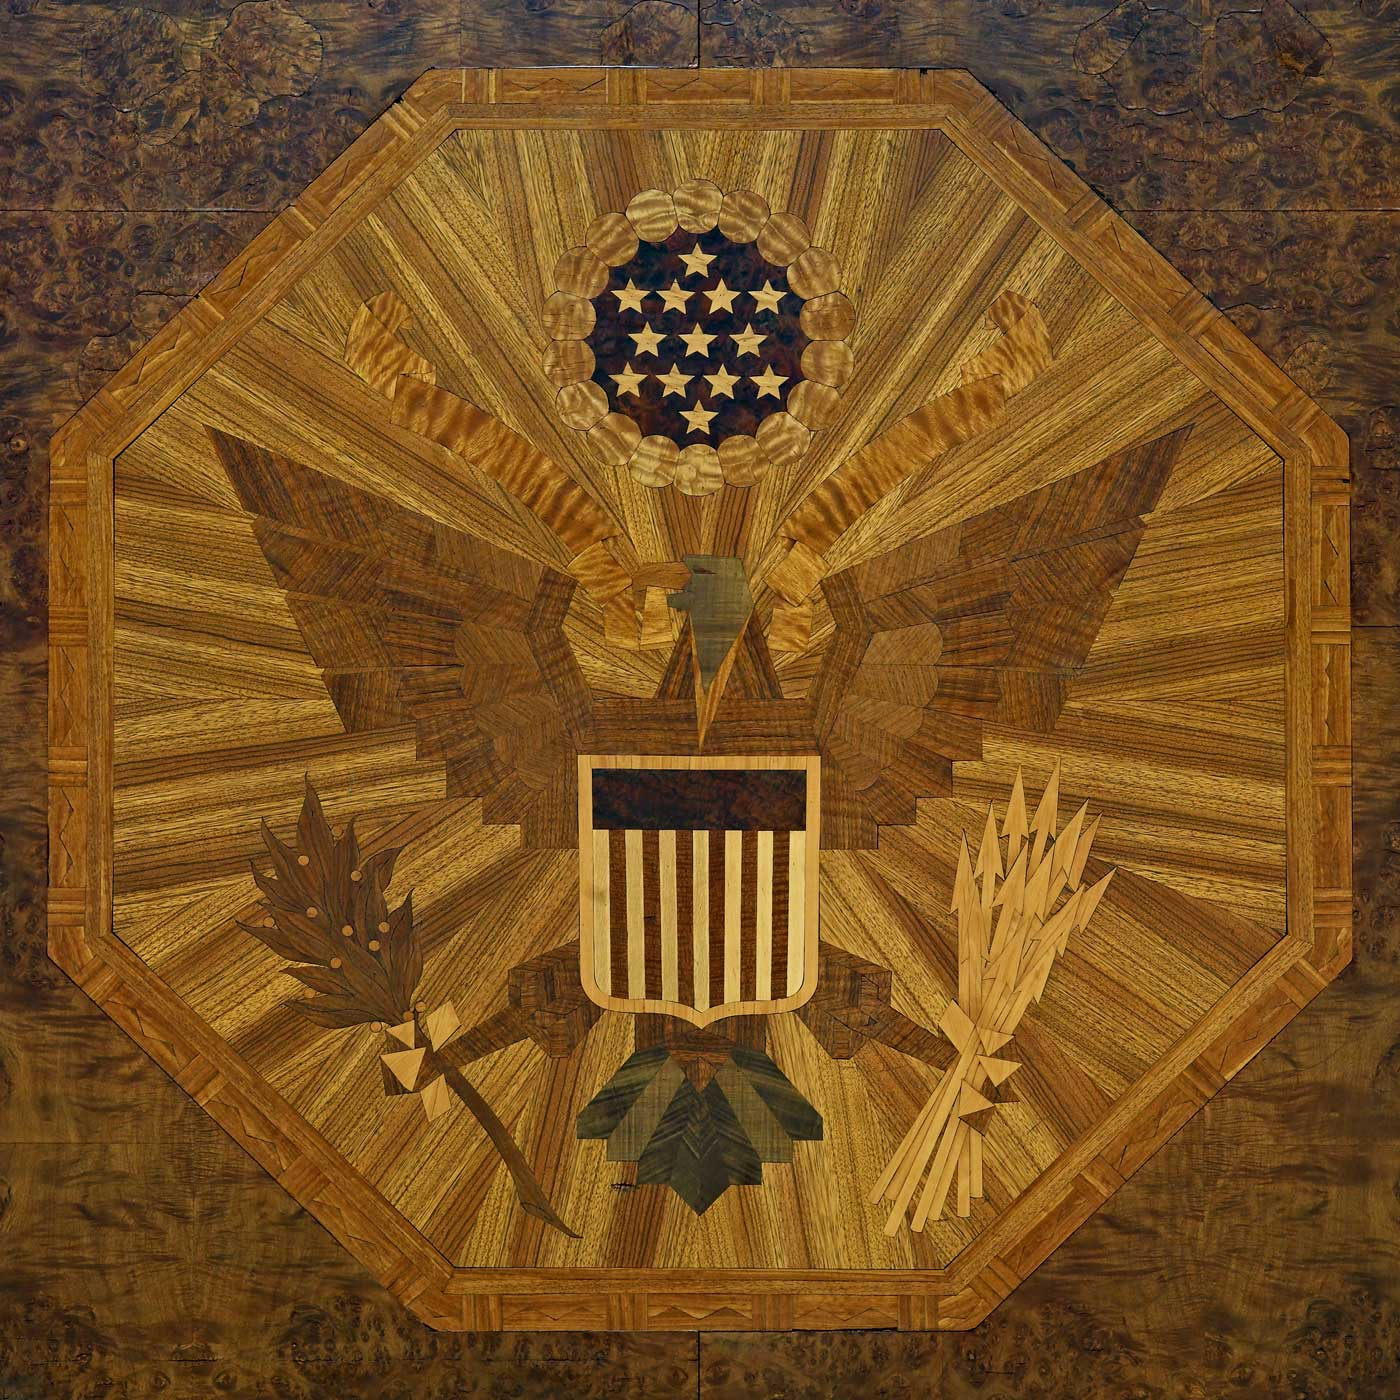 Art Deco US Bald Eagle. 1931 interior inlays in wood lobby detail. James T. Foley U.S. Post Office and Courthouse, Albany, New York Photo by Carol M. Highsmith1